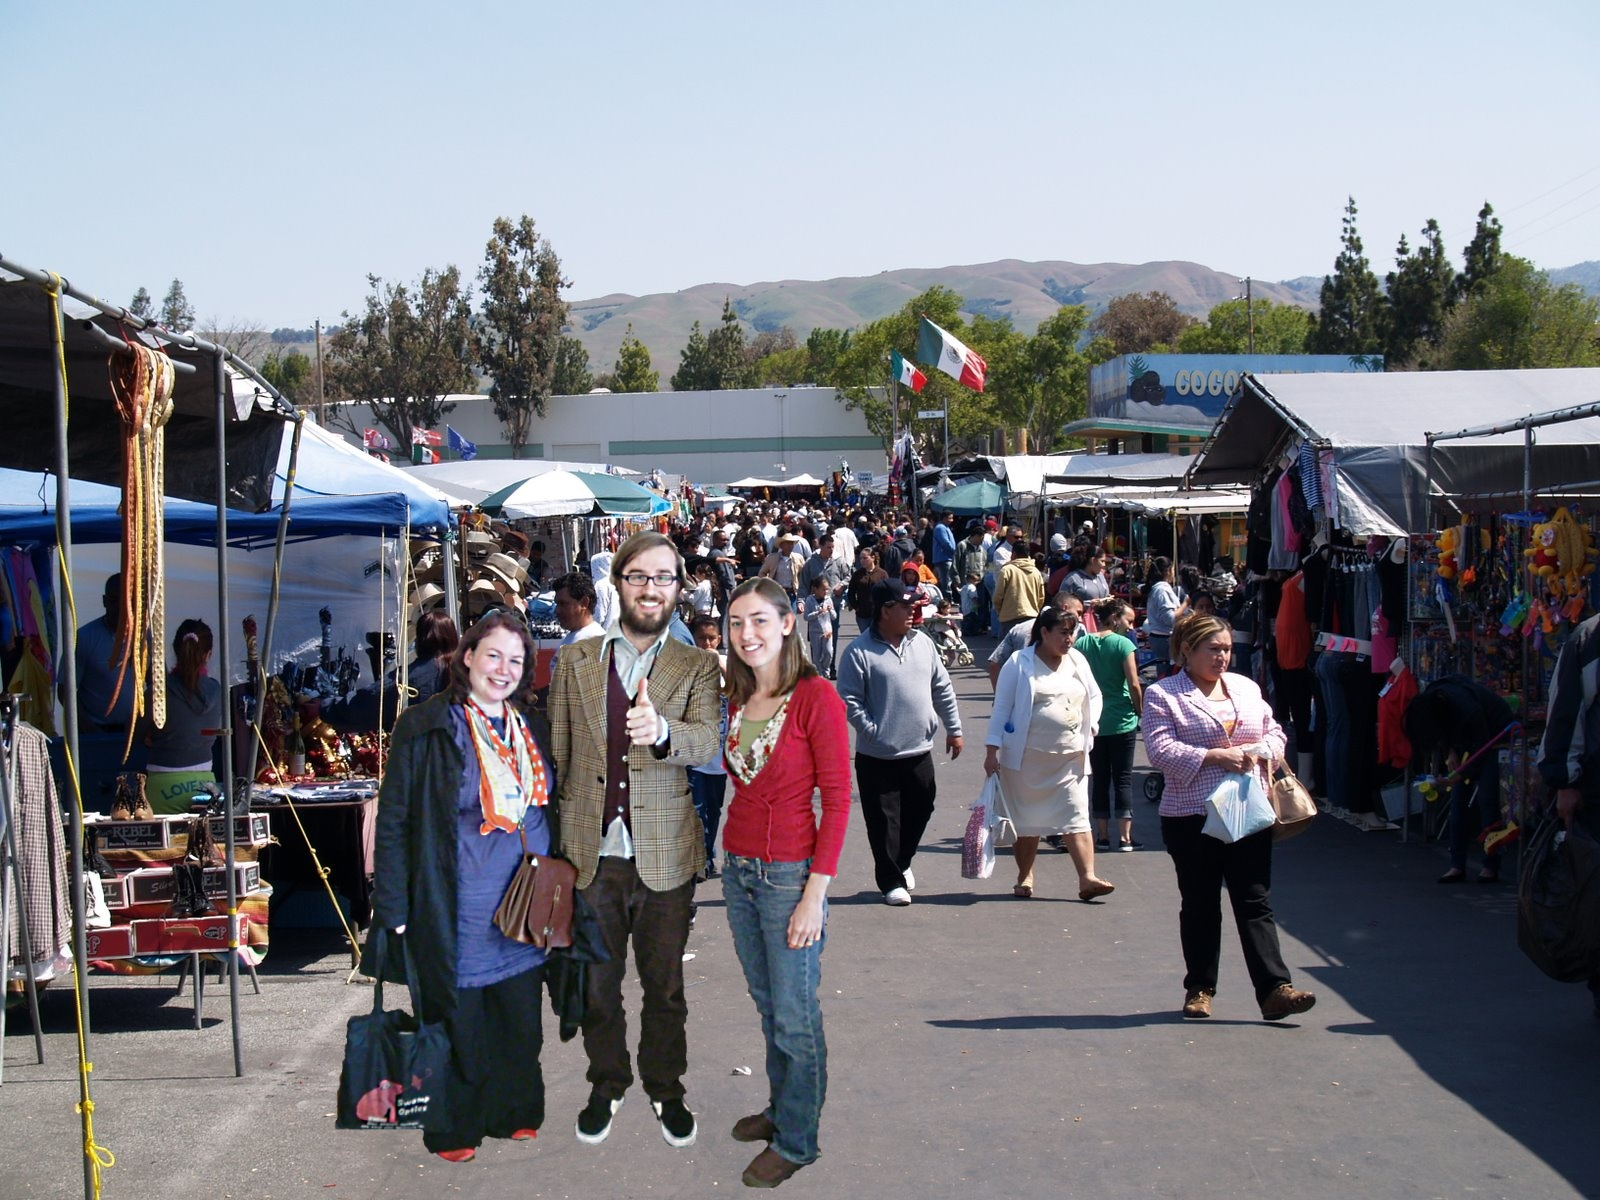 Alison, Helen and Martin: fun times at the San Jose flea market